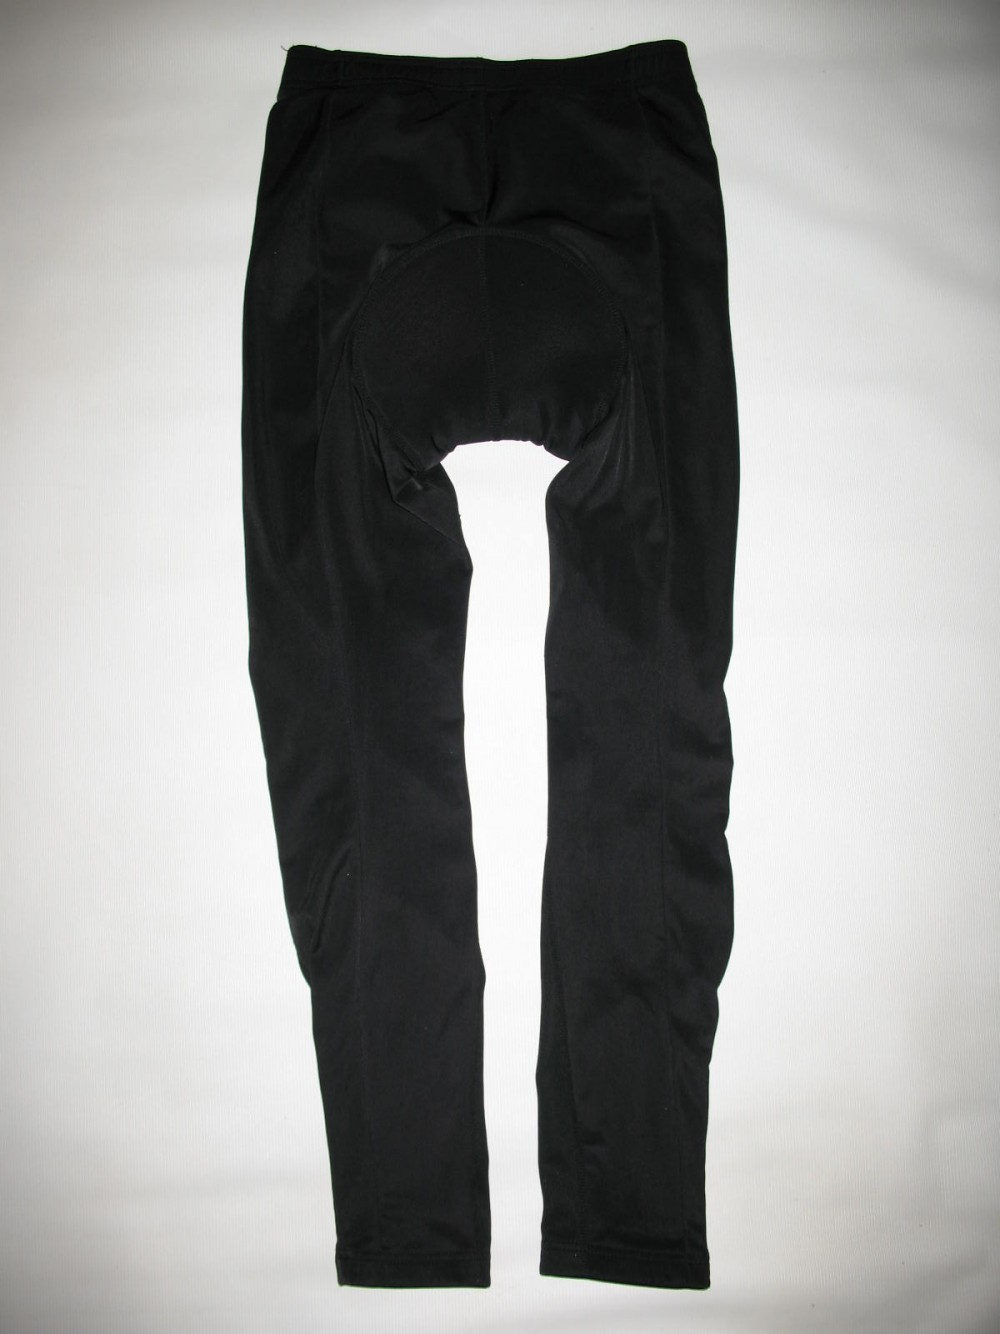 Велобрюки CRANE windstopper cycling pants (размер 48/M) - 2